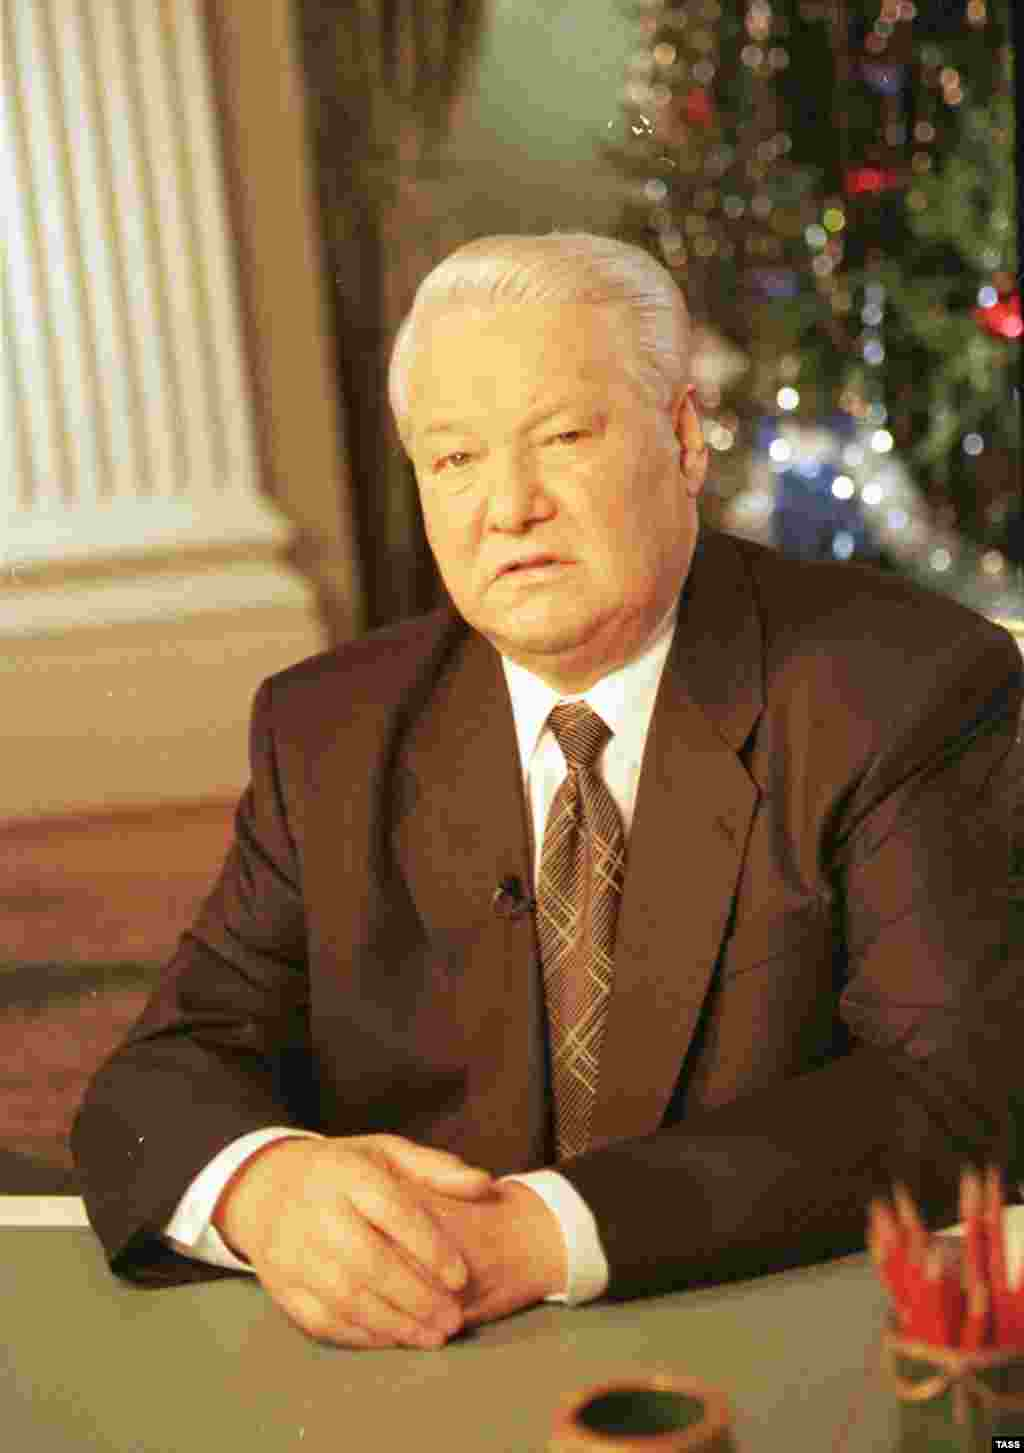 Єльцин оголошує, що йде у відставку, 31 грудня 1999. - Russia – Politics – President Boris Yeltsin announces his resignation, 31Dec1999. Source: ITAR-TASS.